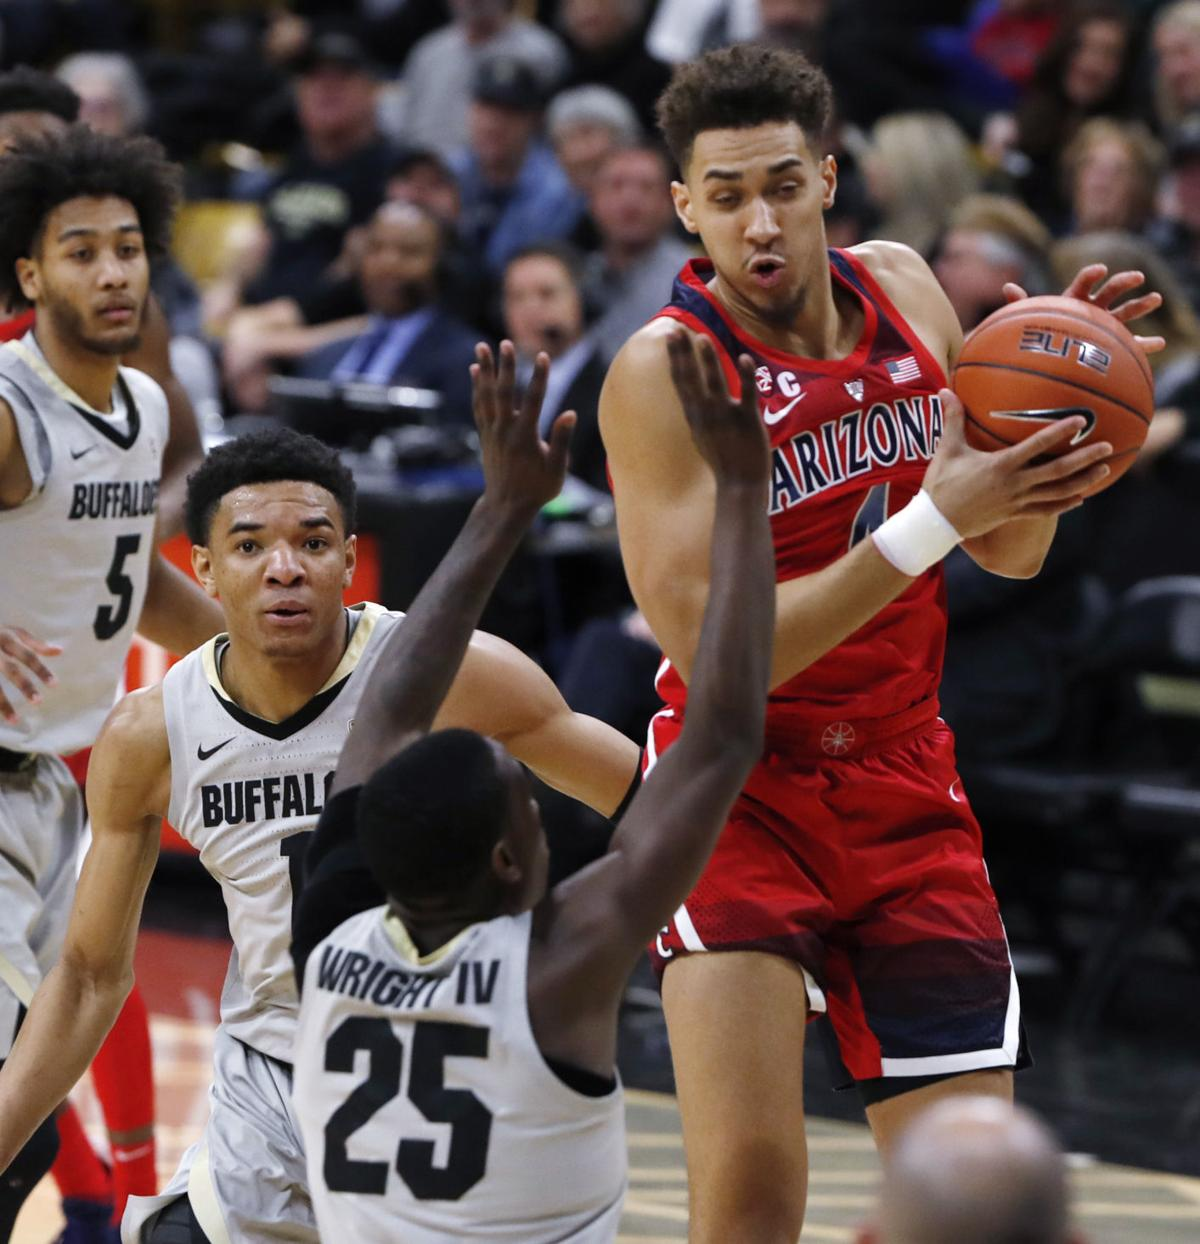 Colorado Basketball: Arizona Wildcats Battle, But Come Up Short Against